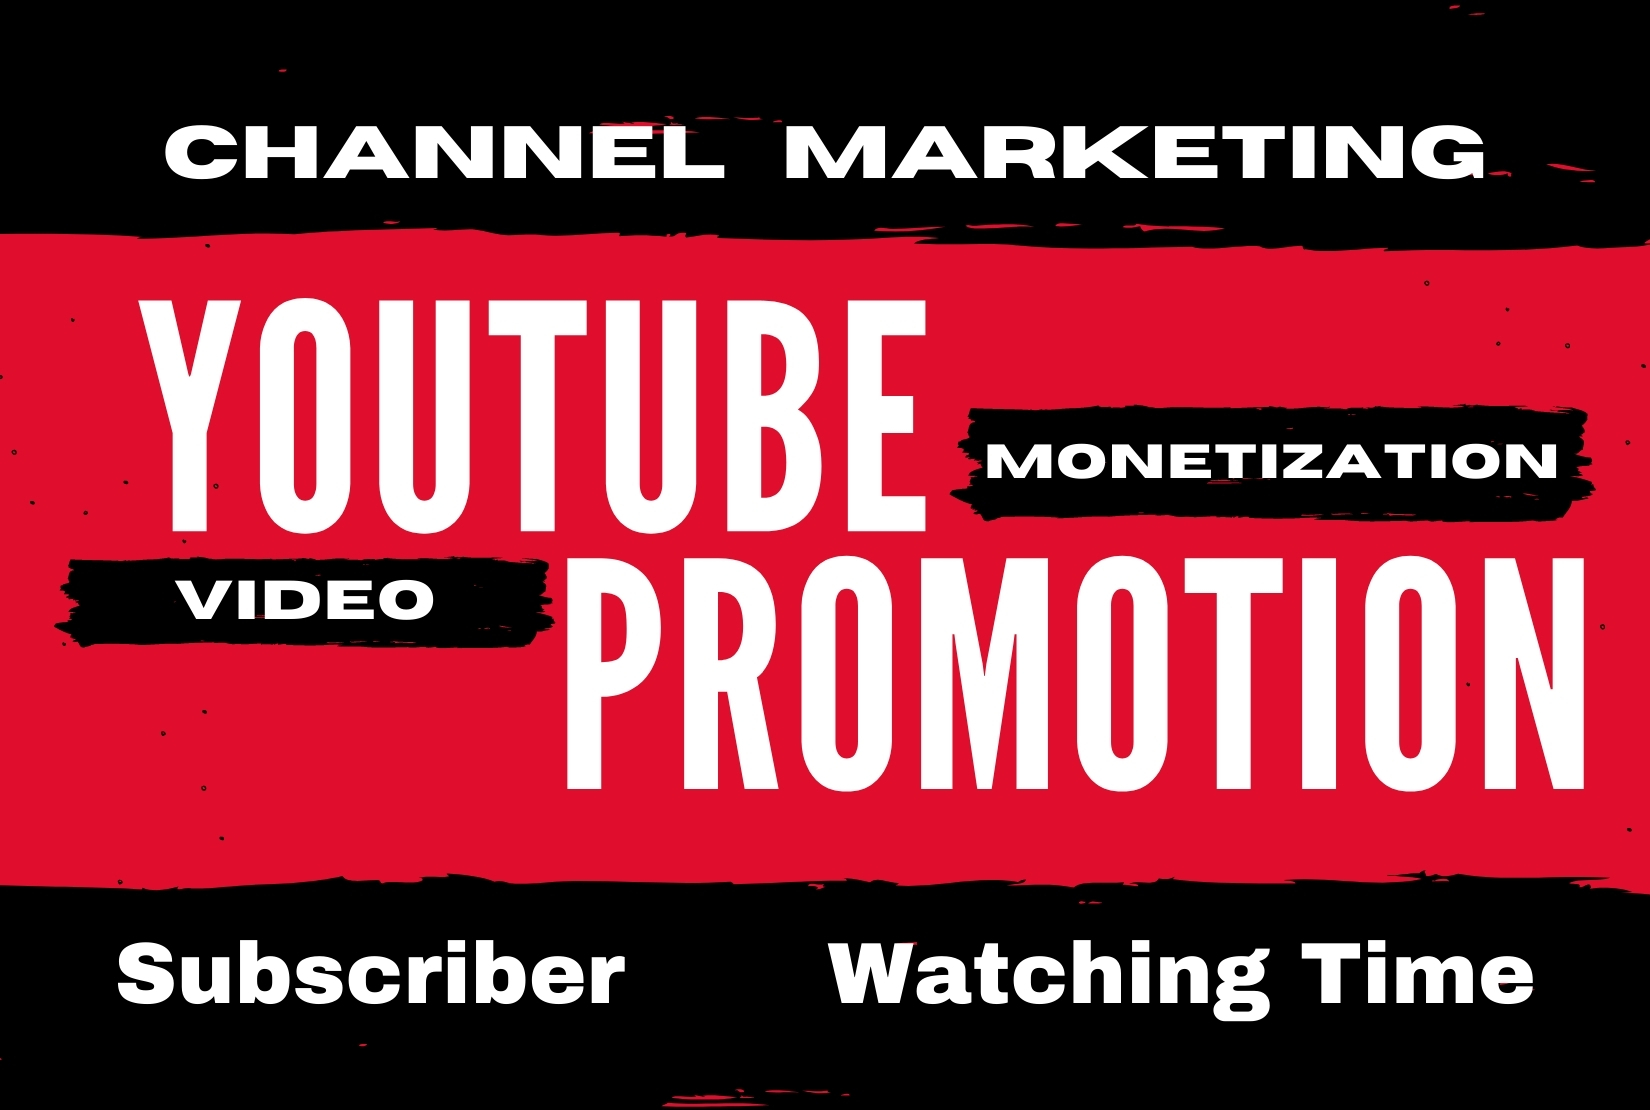 YouTube Video Promotion for monetization